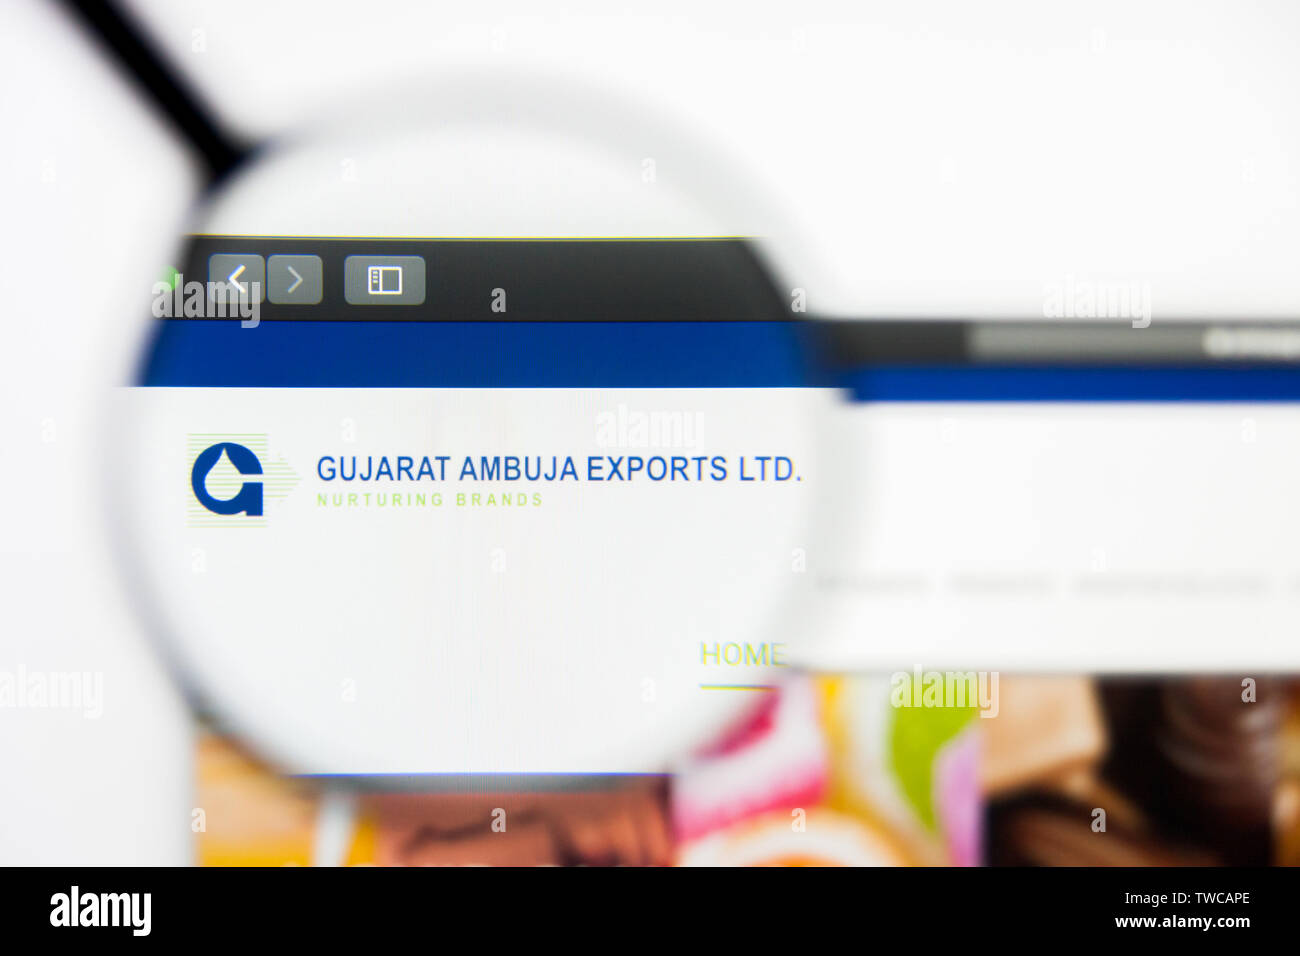 New York, New York State, USA - 19 June 2019: Illustrative Editorial of Gujarat Ambuja Exports website homepage. Gujarat Ambuja Exports logo visible o - Stock Image